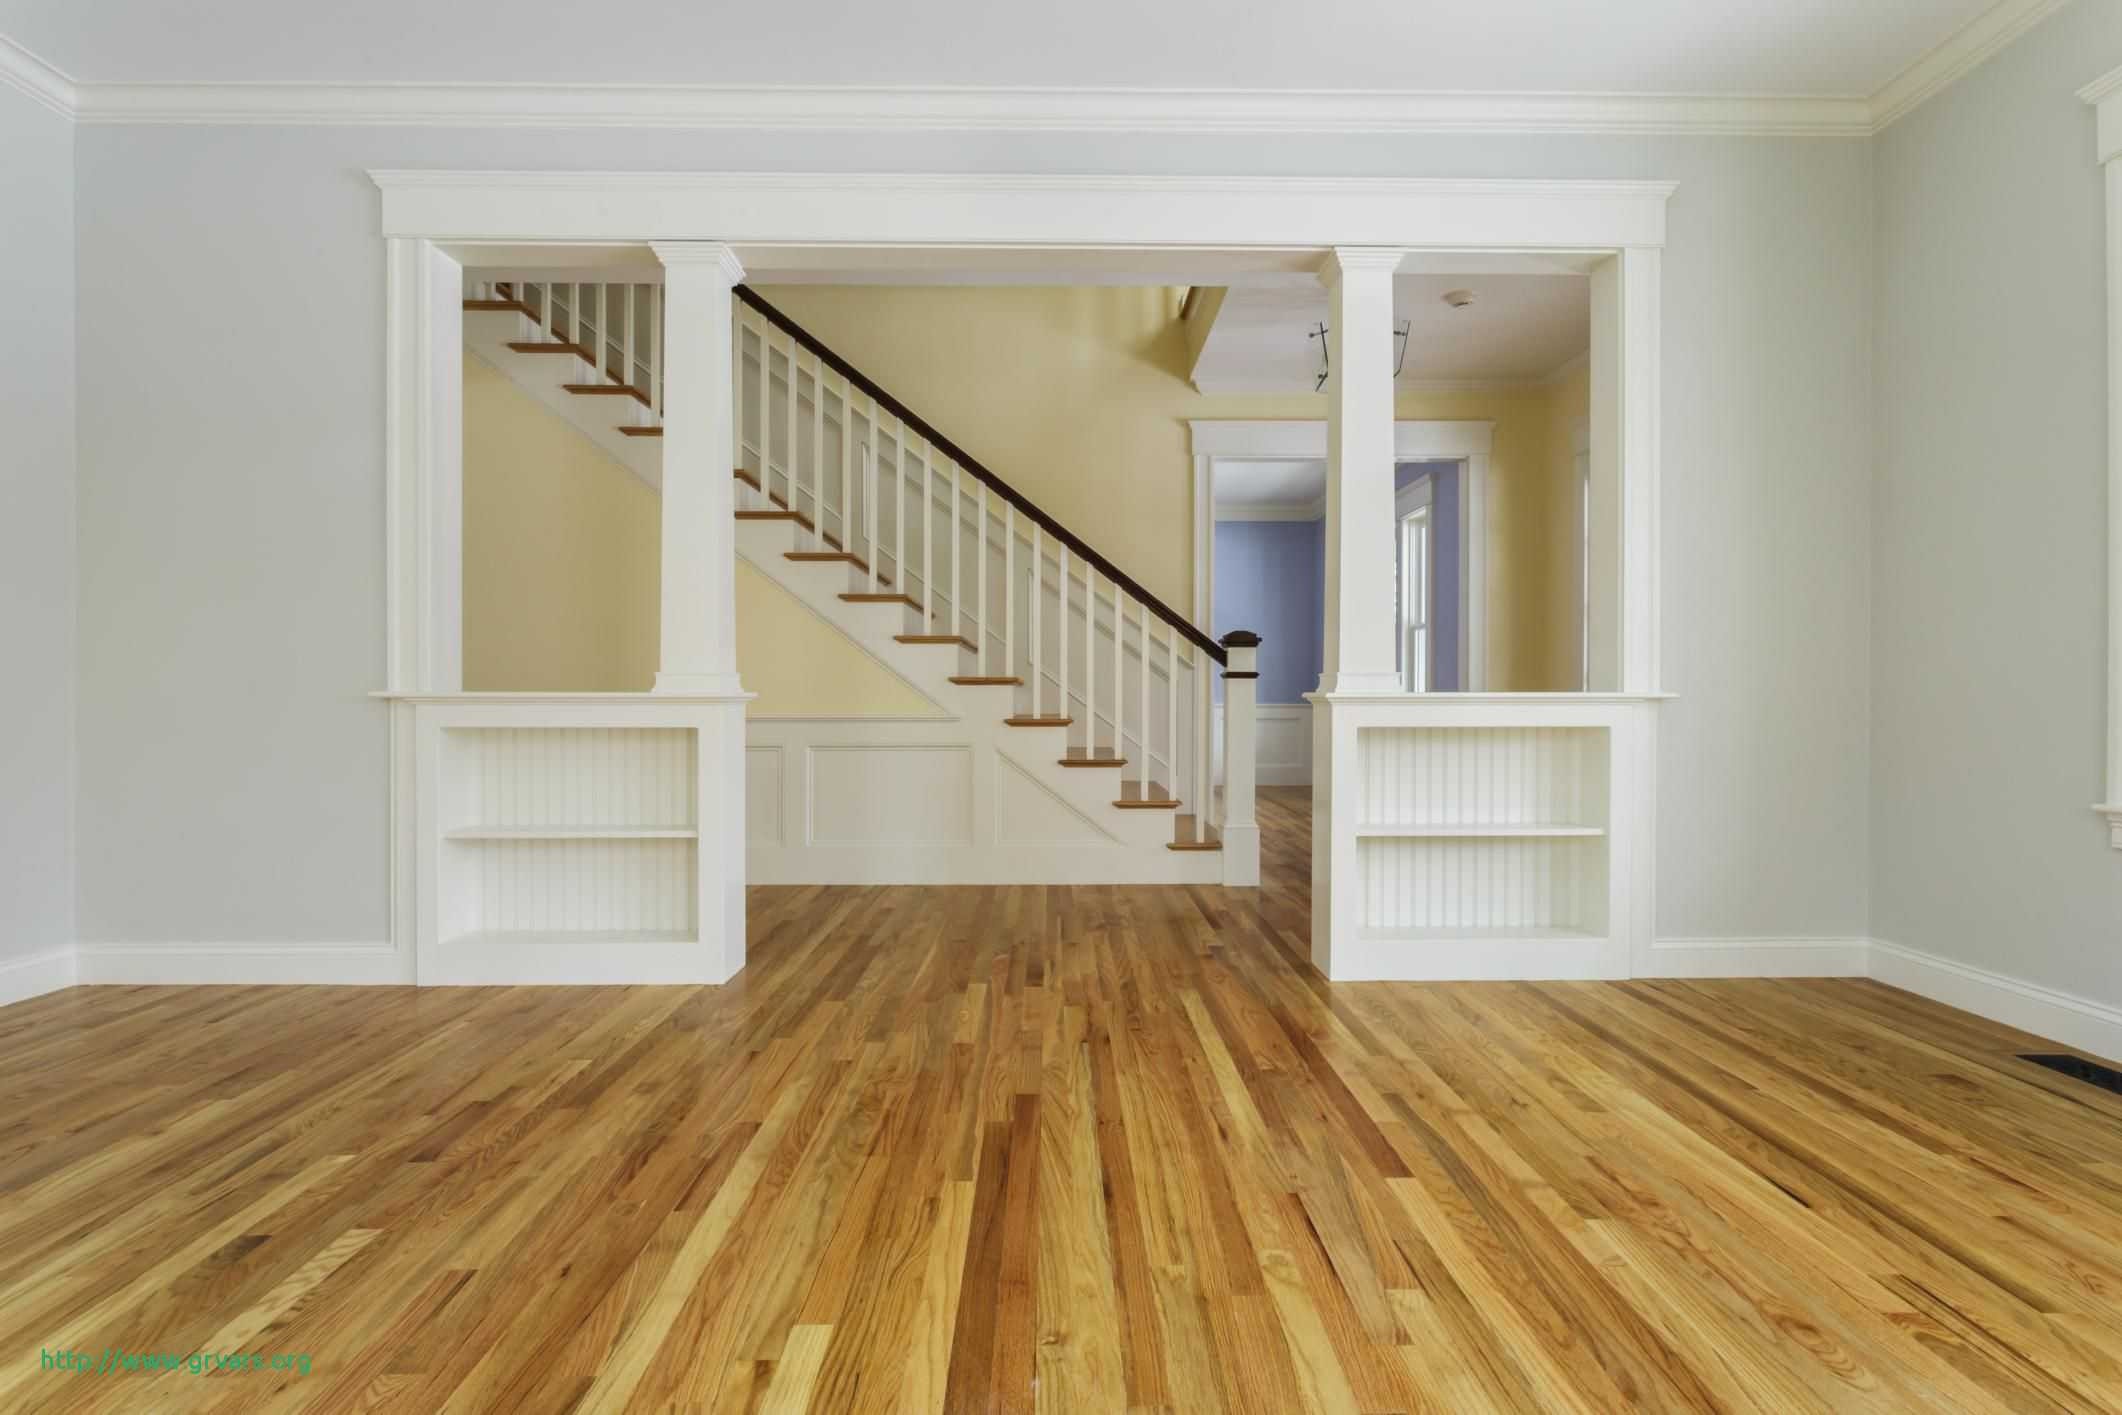 21 Stylish Best Waterproof Hardwood Flooring 2021 free download best waterproof hardwood flooring of 22 unique what is the best type of wood flooring for dogs ideas blog with what is the best type of wood flooring for dogs frais guide to solid hardwood f